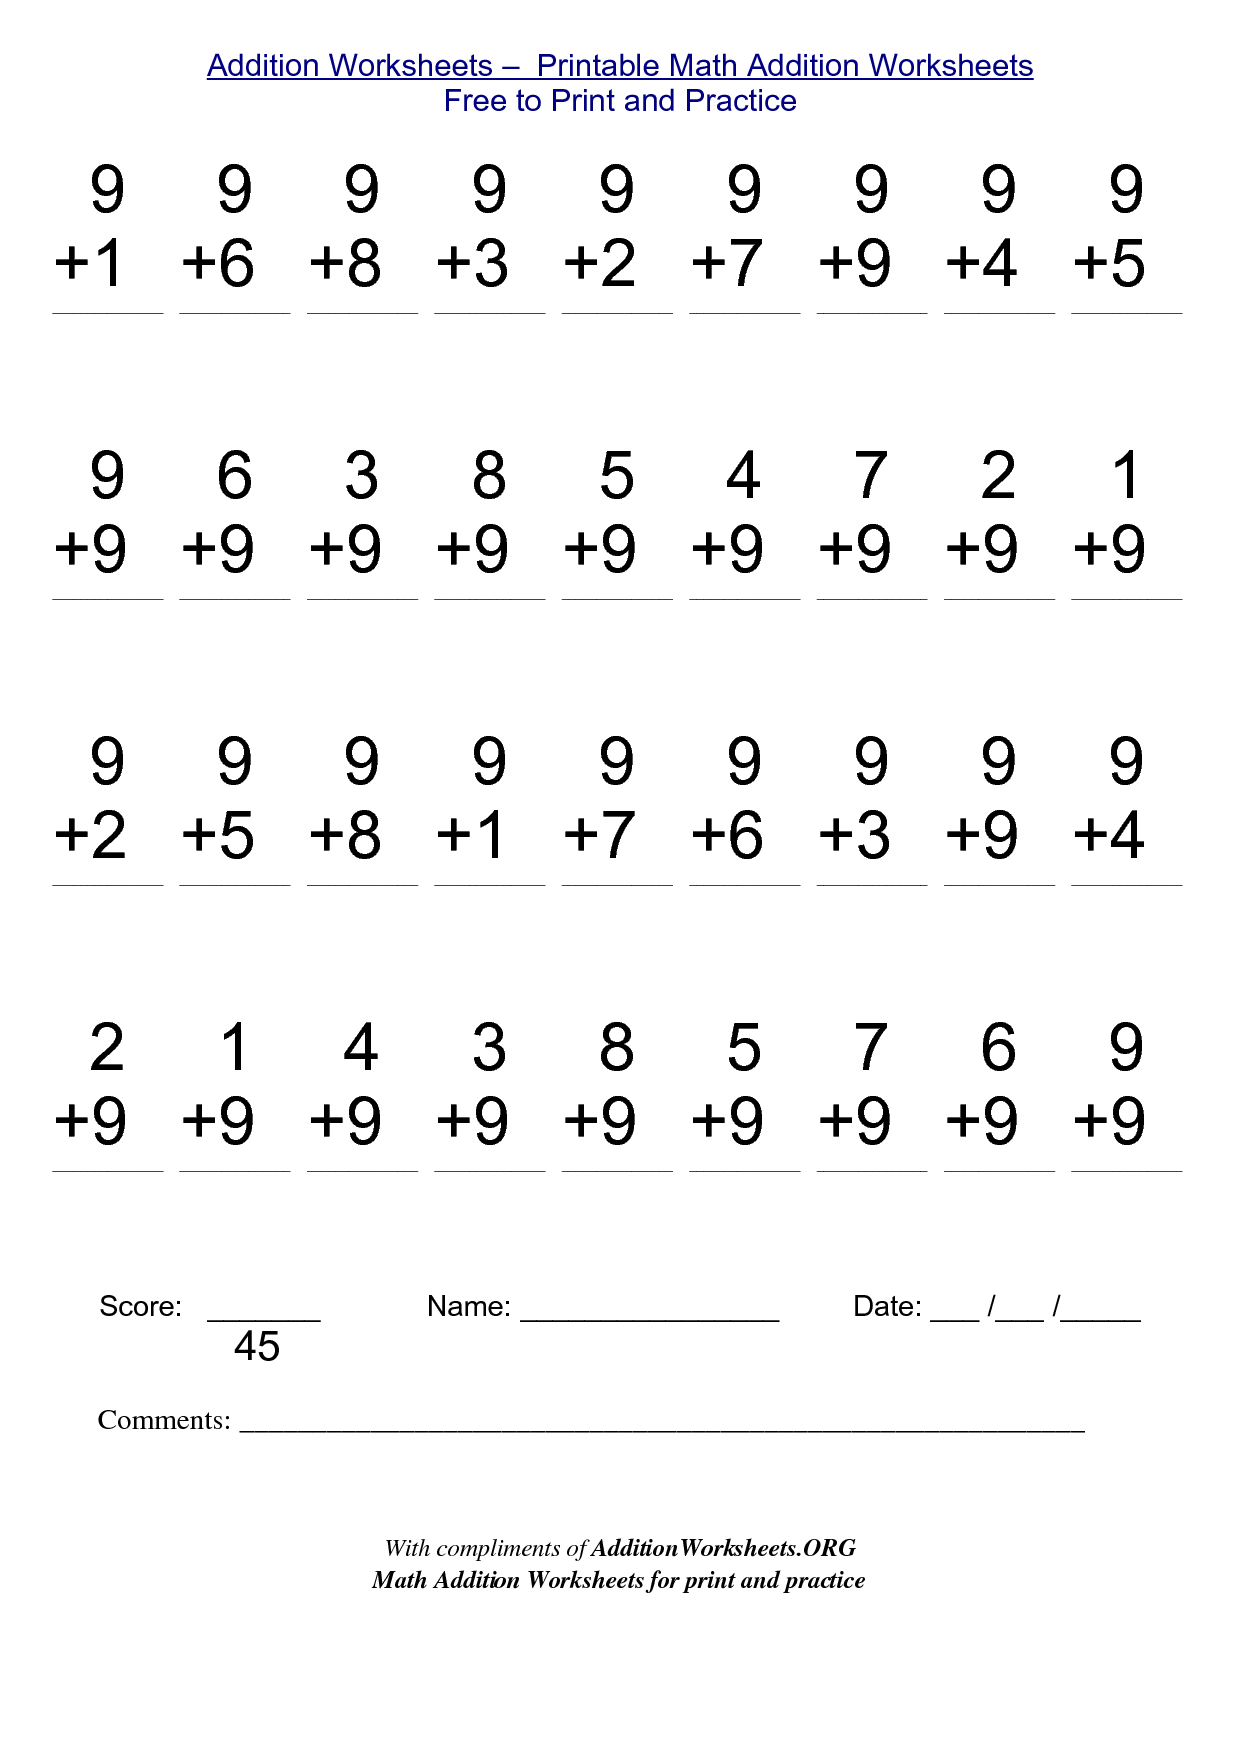 Math Worksheets for Free to Print Alot ME – 3rd Grade Math Worksheets Printable